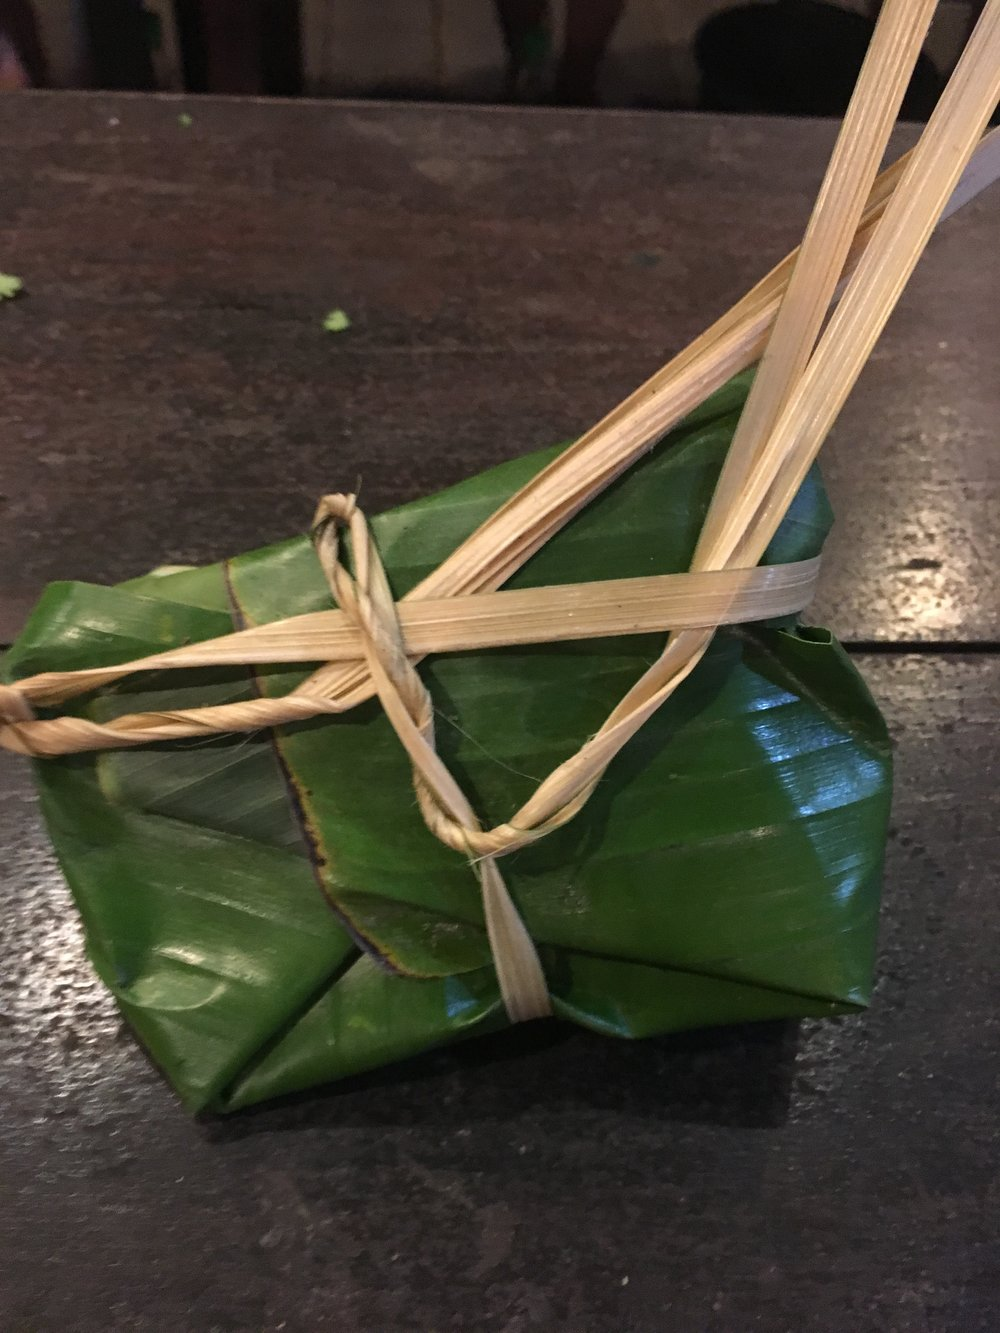 Wrapped banana leaf package ready for the steamer